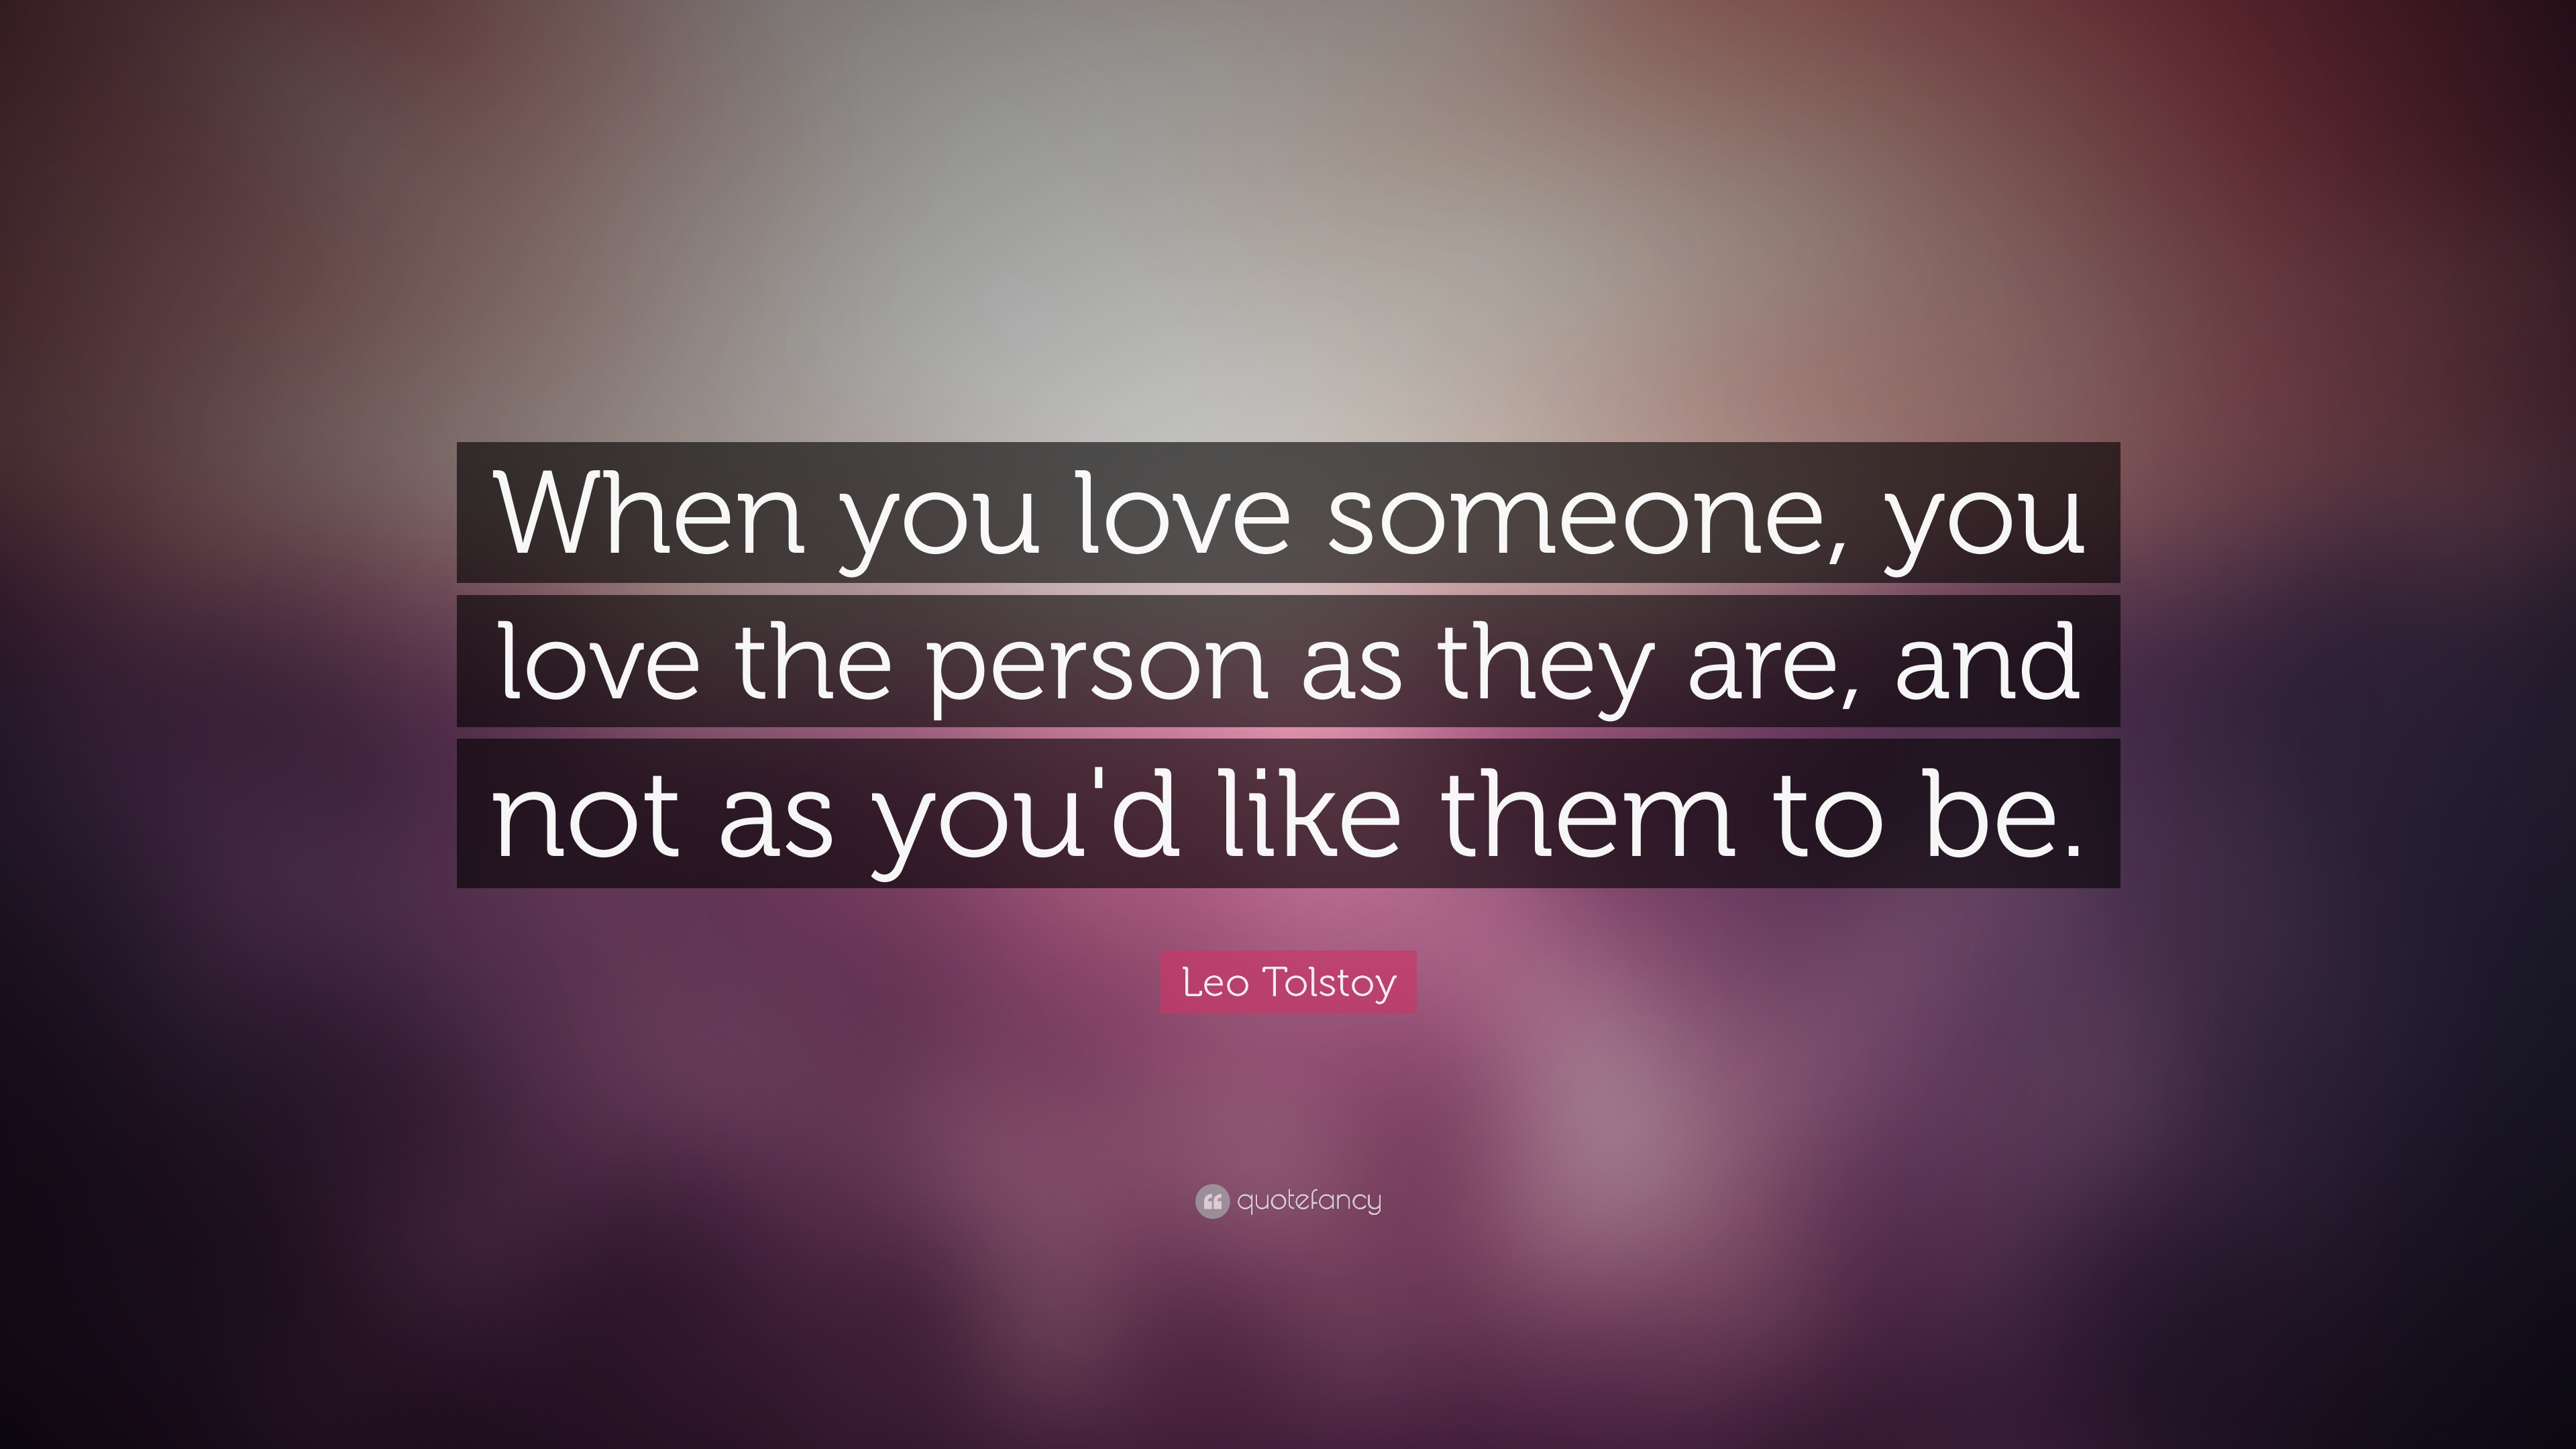 They Love Are Who A Person For